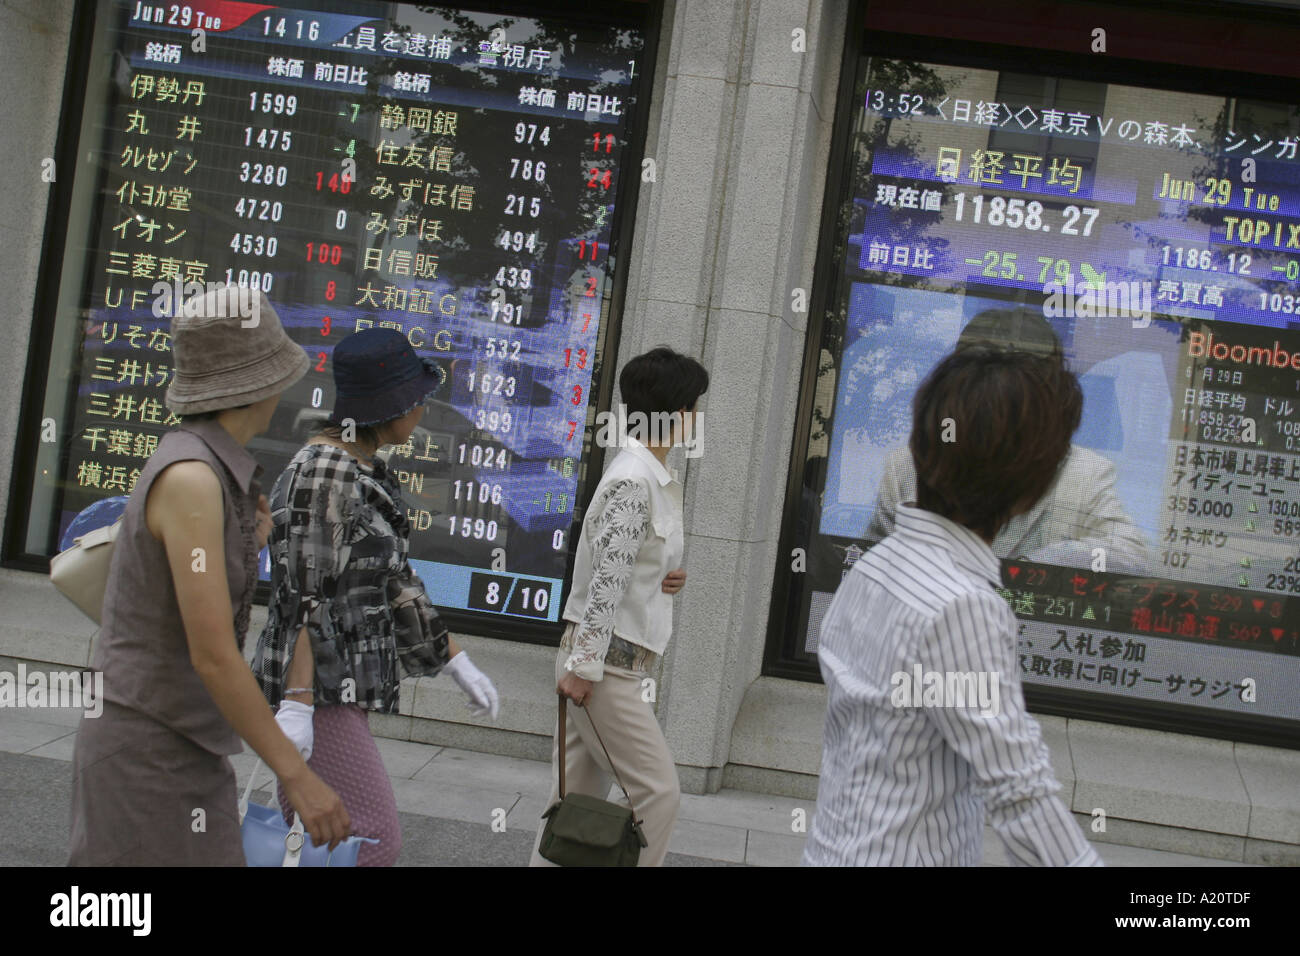 Japanese women walk past a bank stocks and shares monitor screen showing the latest values of commodities, Tokyo, Japan - Stock Image